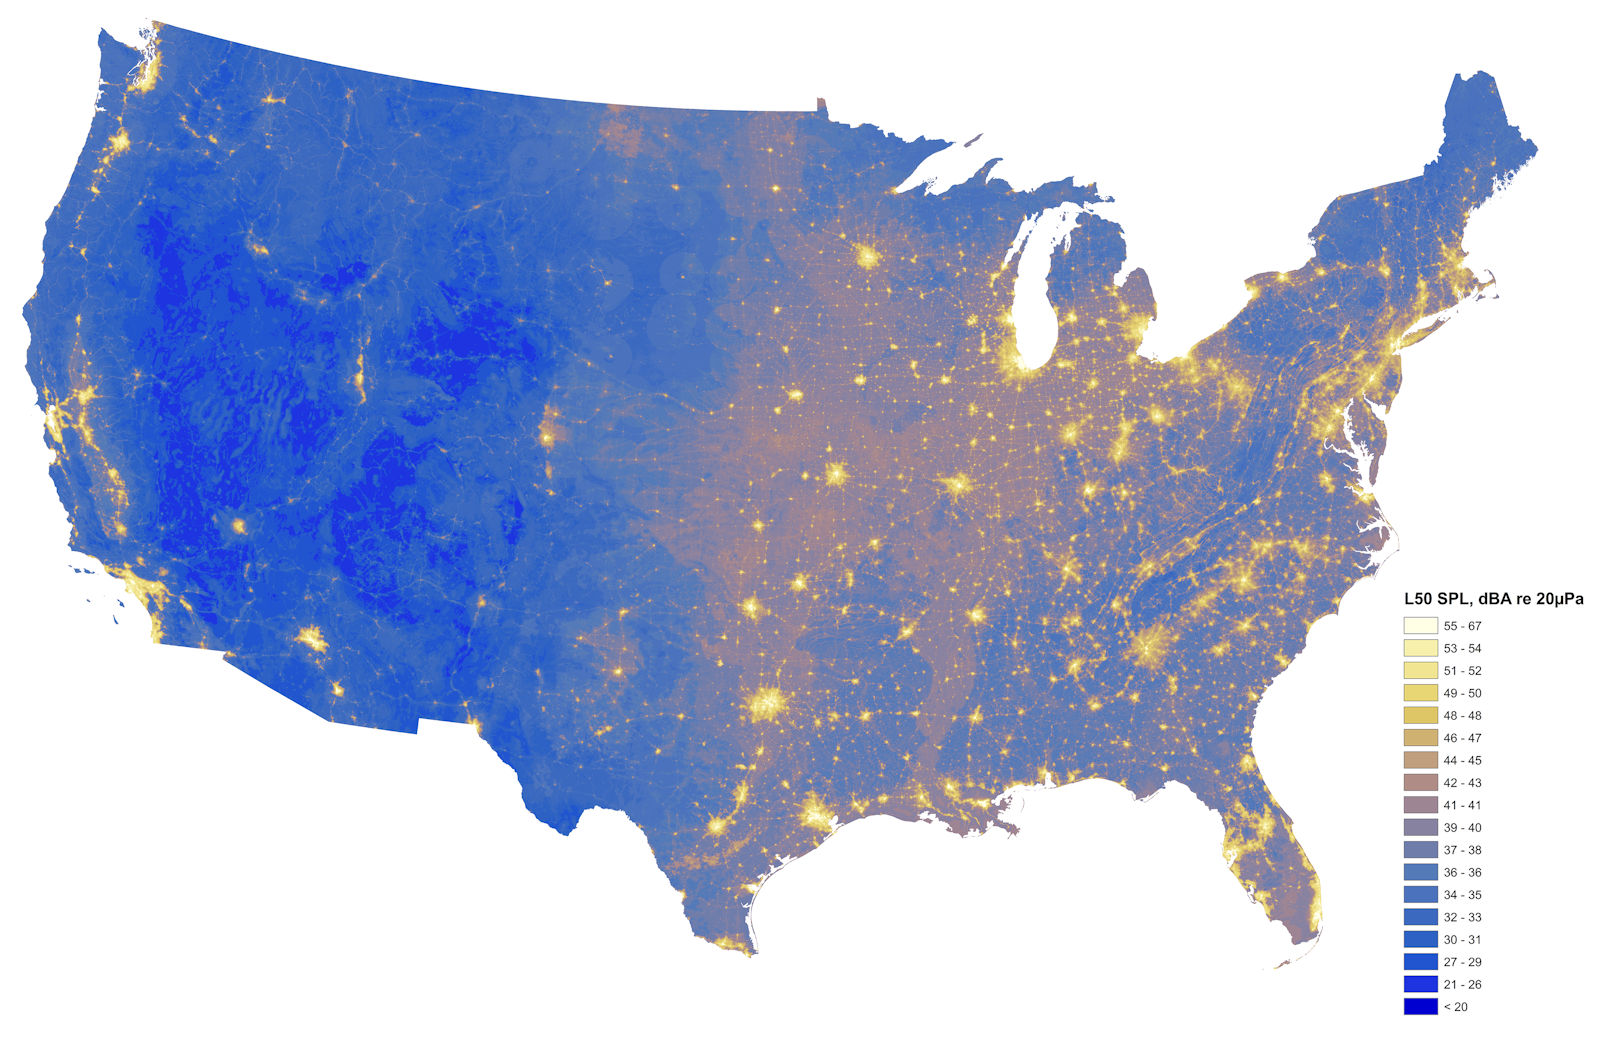 Sound level map of continental US